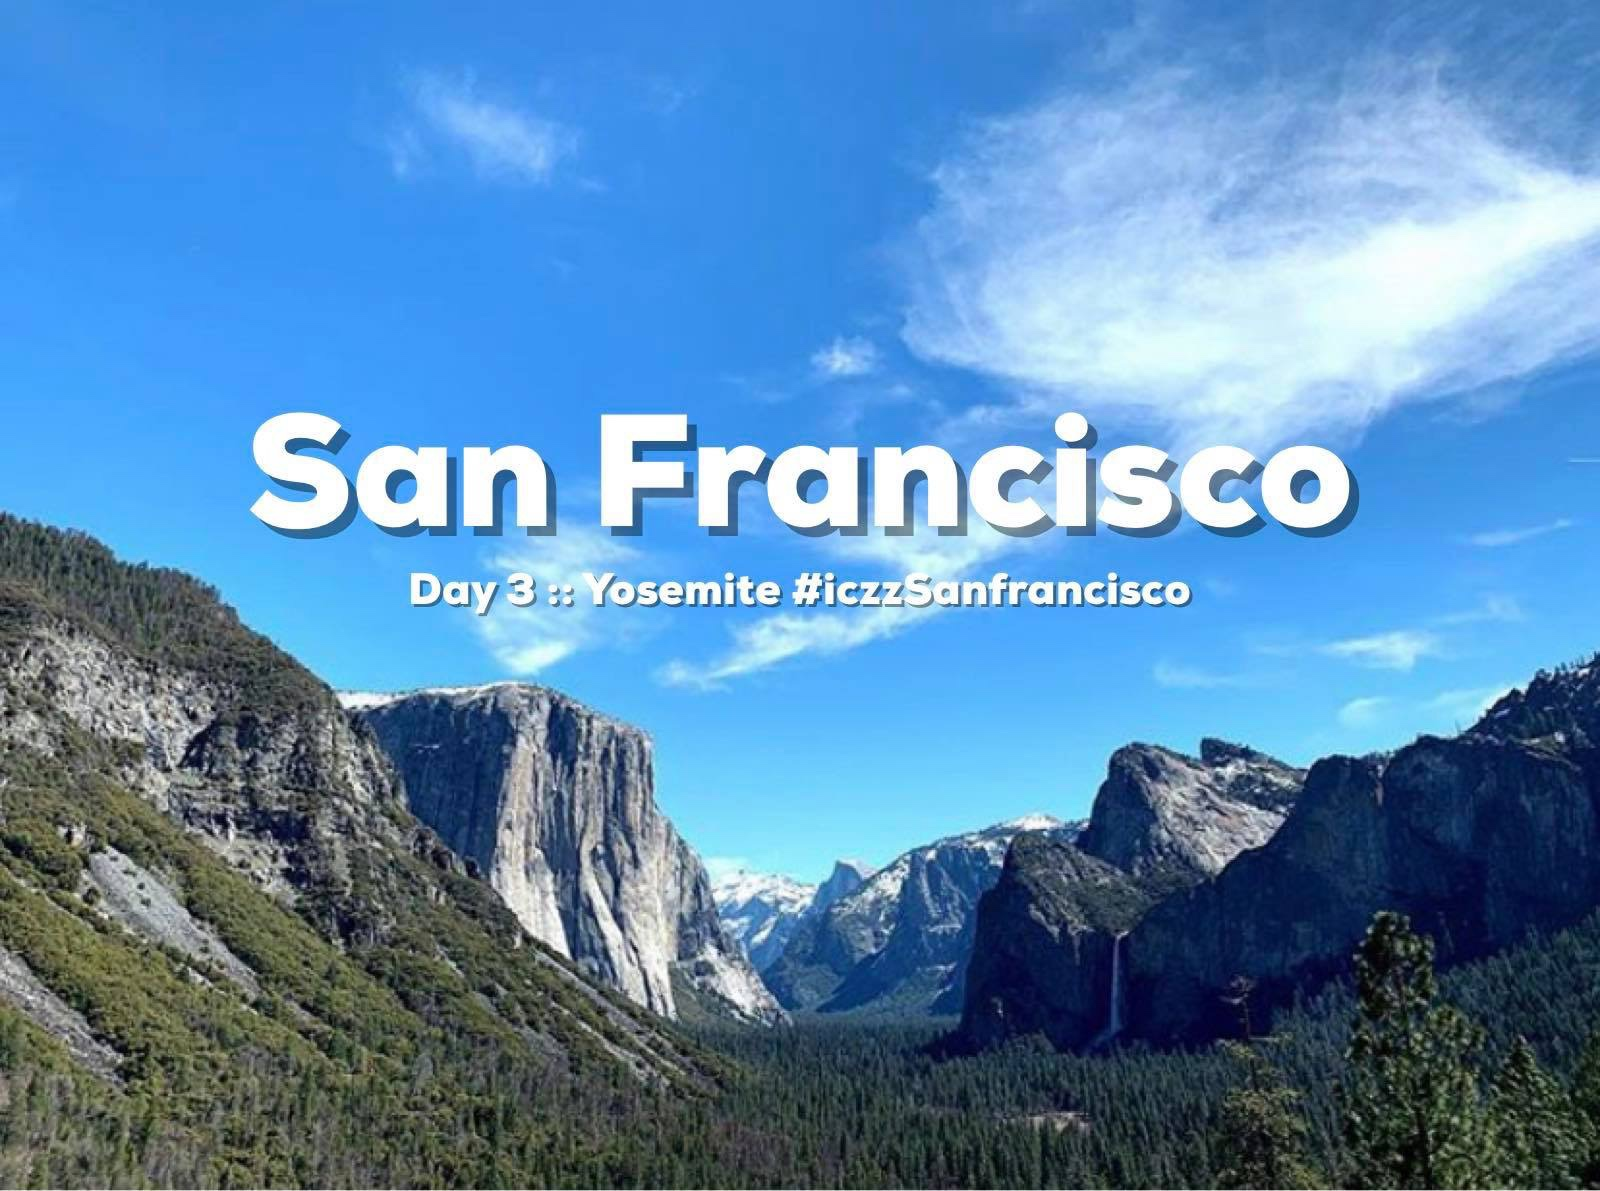 รีวิวเที่ยว San Francisco USA :: San Francisco USA 101 Top things to do in San Francisco USA EP.3/6 @iczz #iczzSanFrancisco